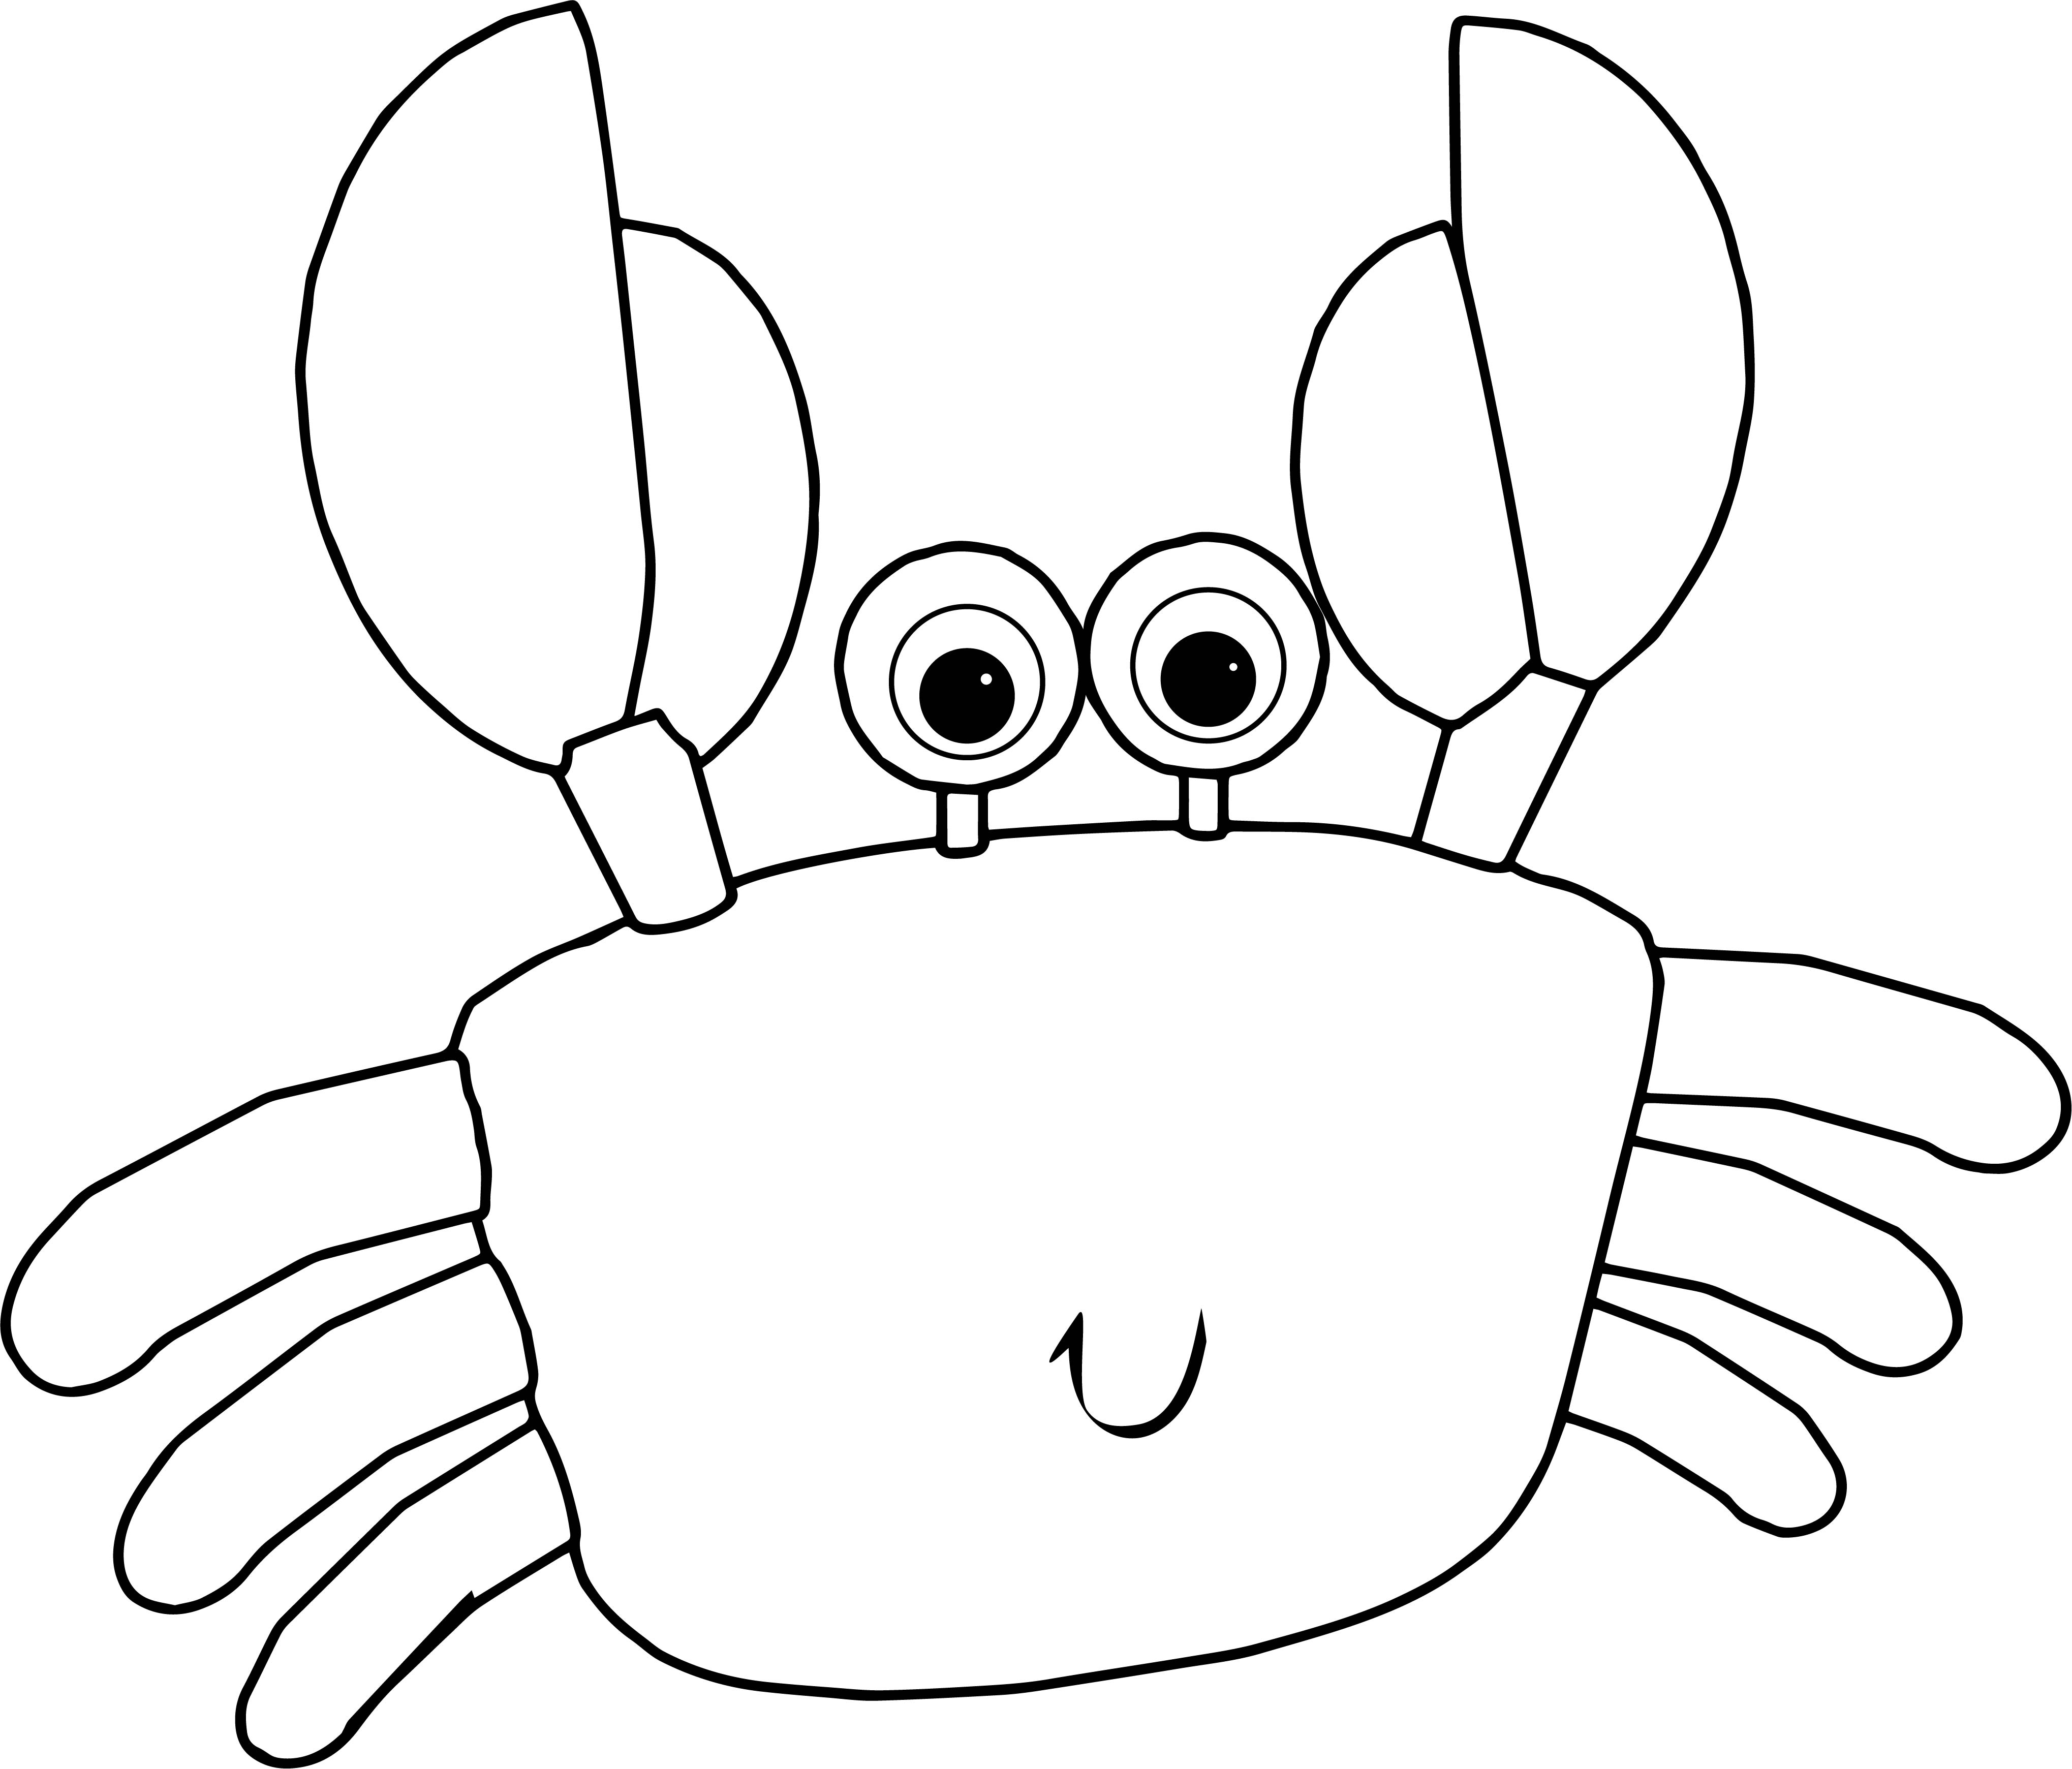 Crab Cartoon Coloring Page